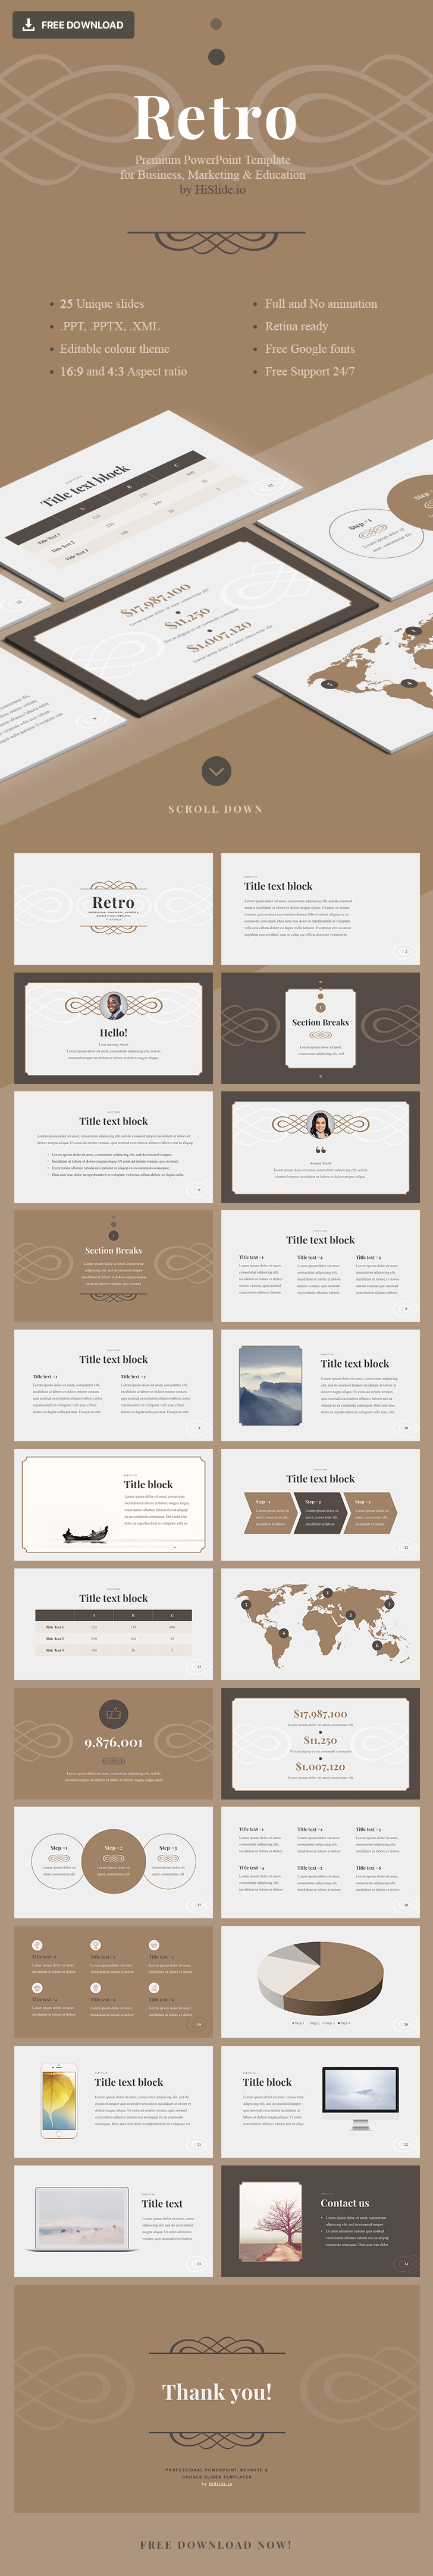 retro-powerpoint-template